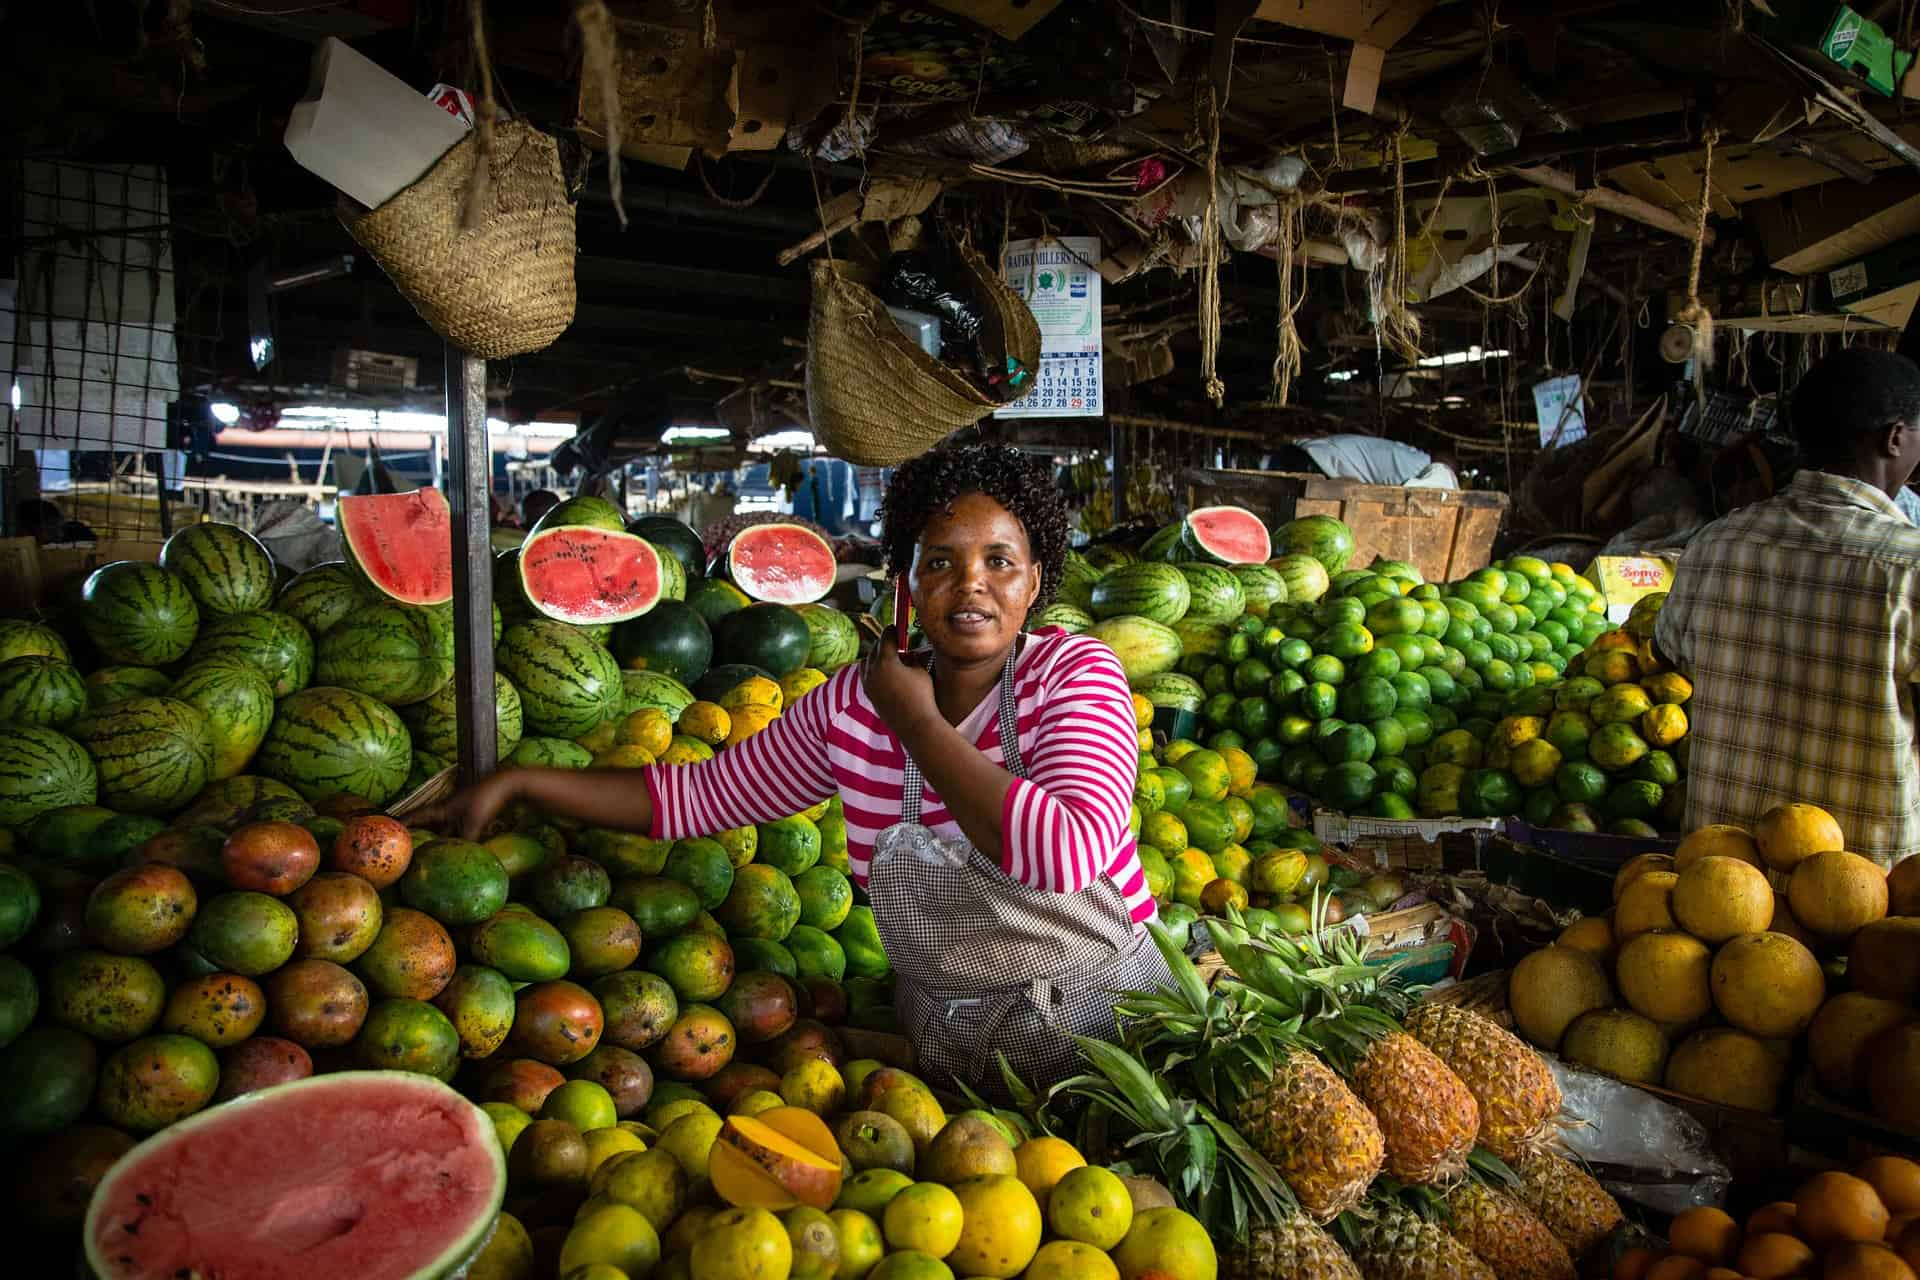 Woman among fruits in a food market in Nairobi